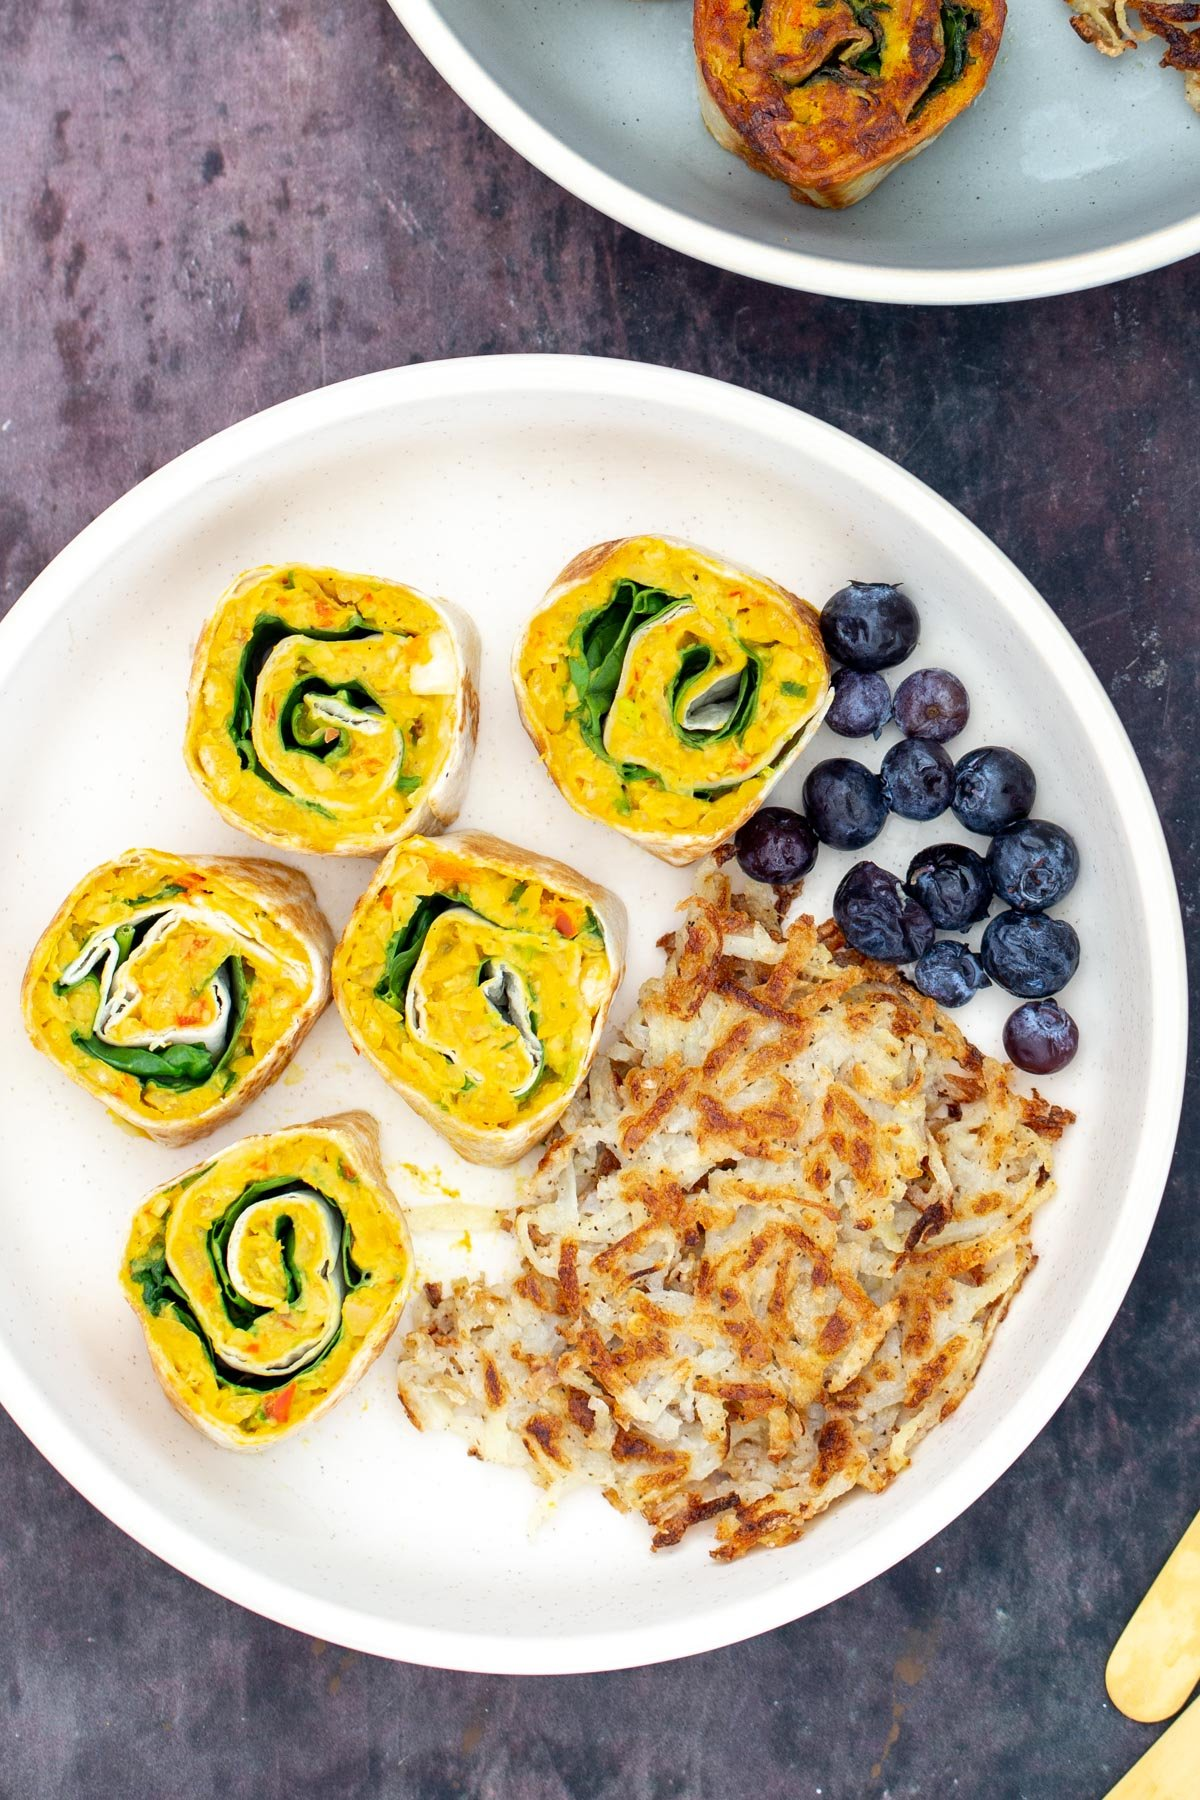 vegan chickpea breakfast rolls served on a plate with blueberries and hashbrowns